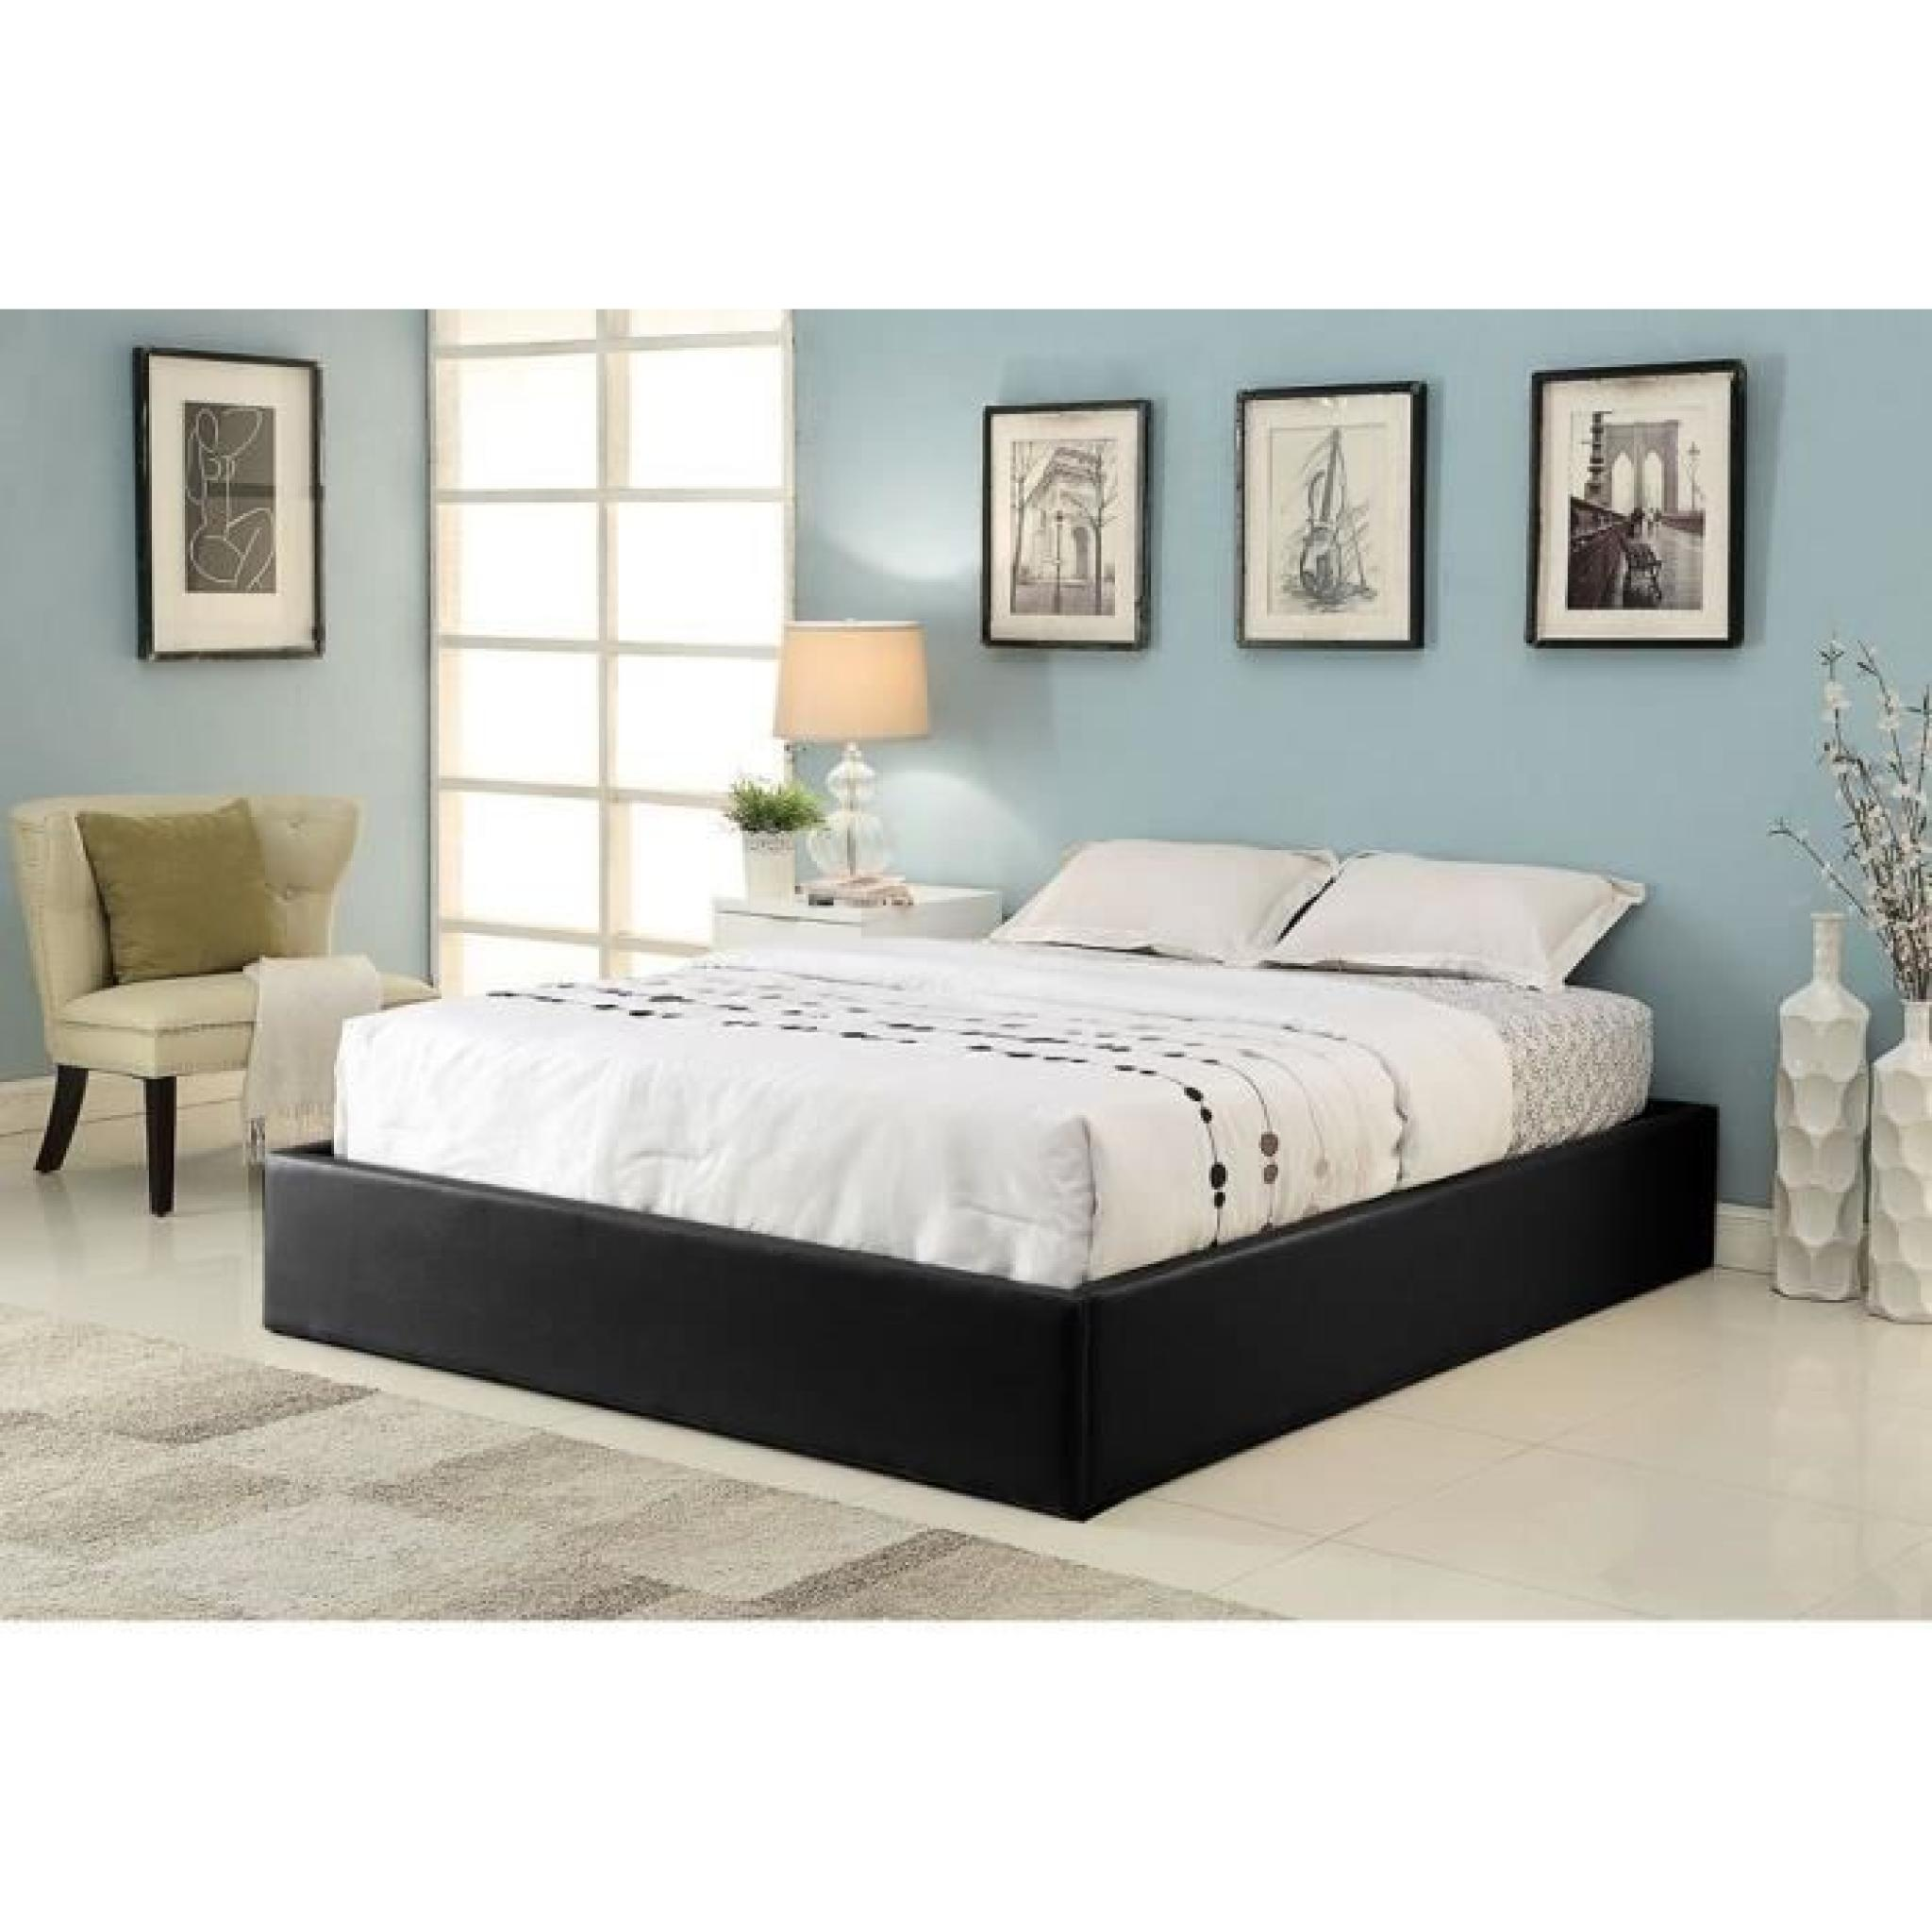 majesty lit coffre adulte 160x200 sommier noir achat. Black Bedroom Furniture Sets. Home Design Ideas